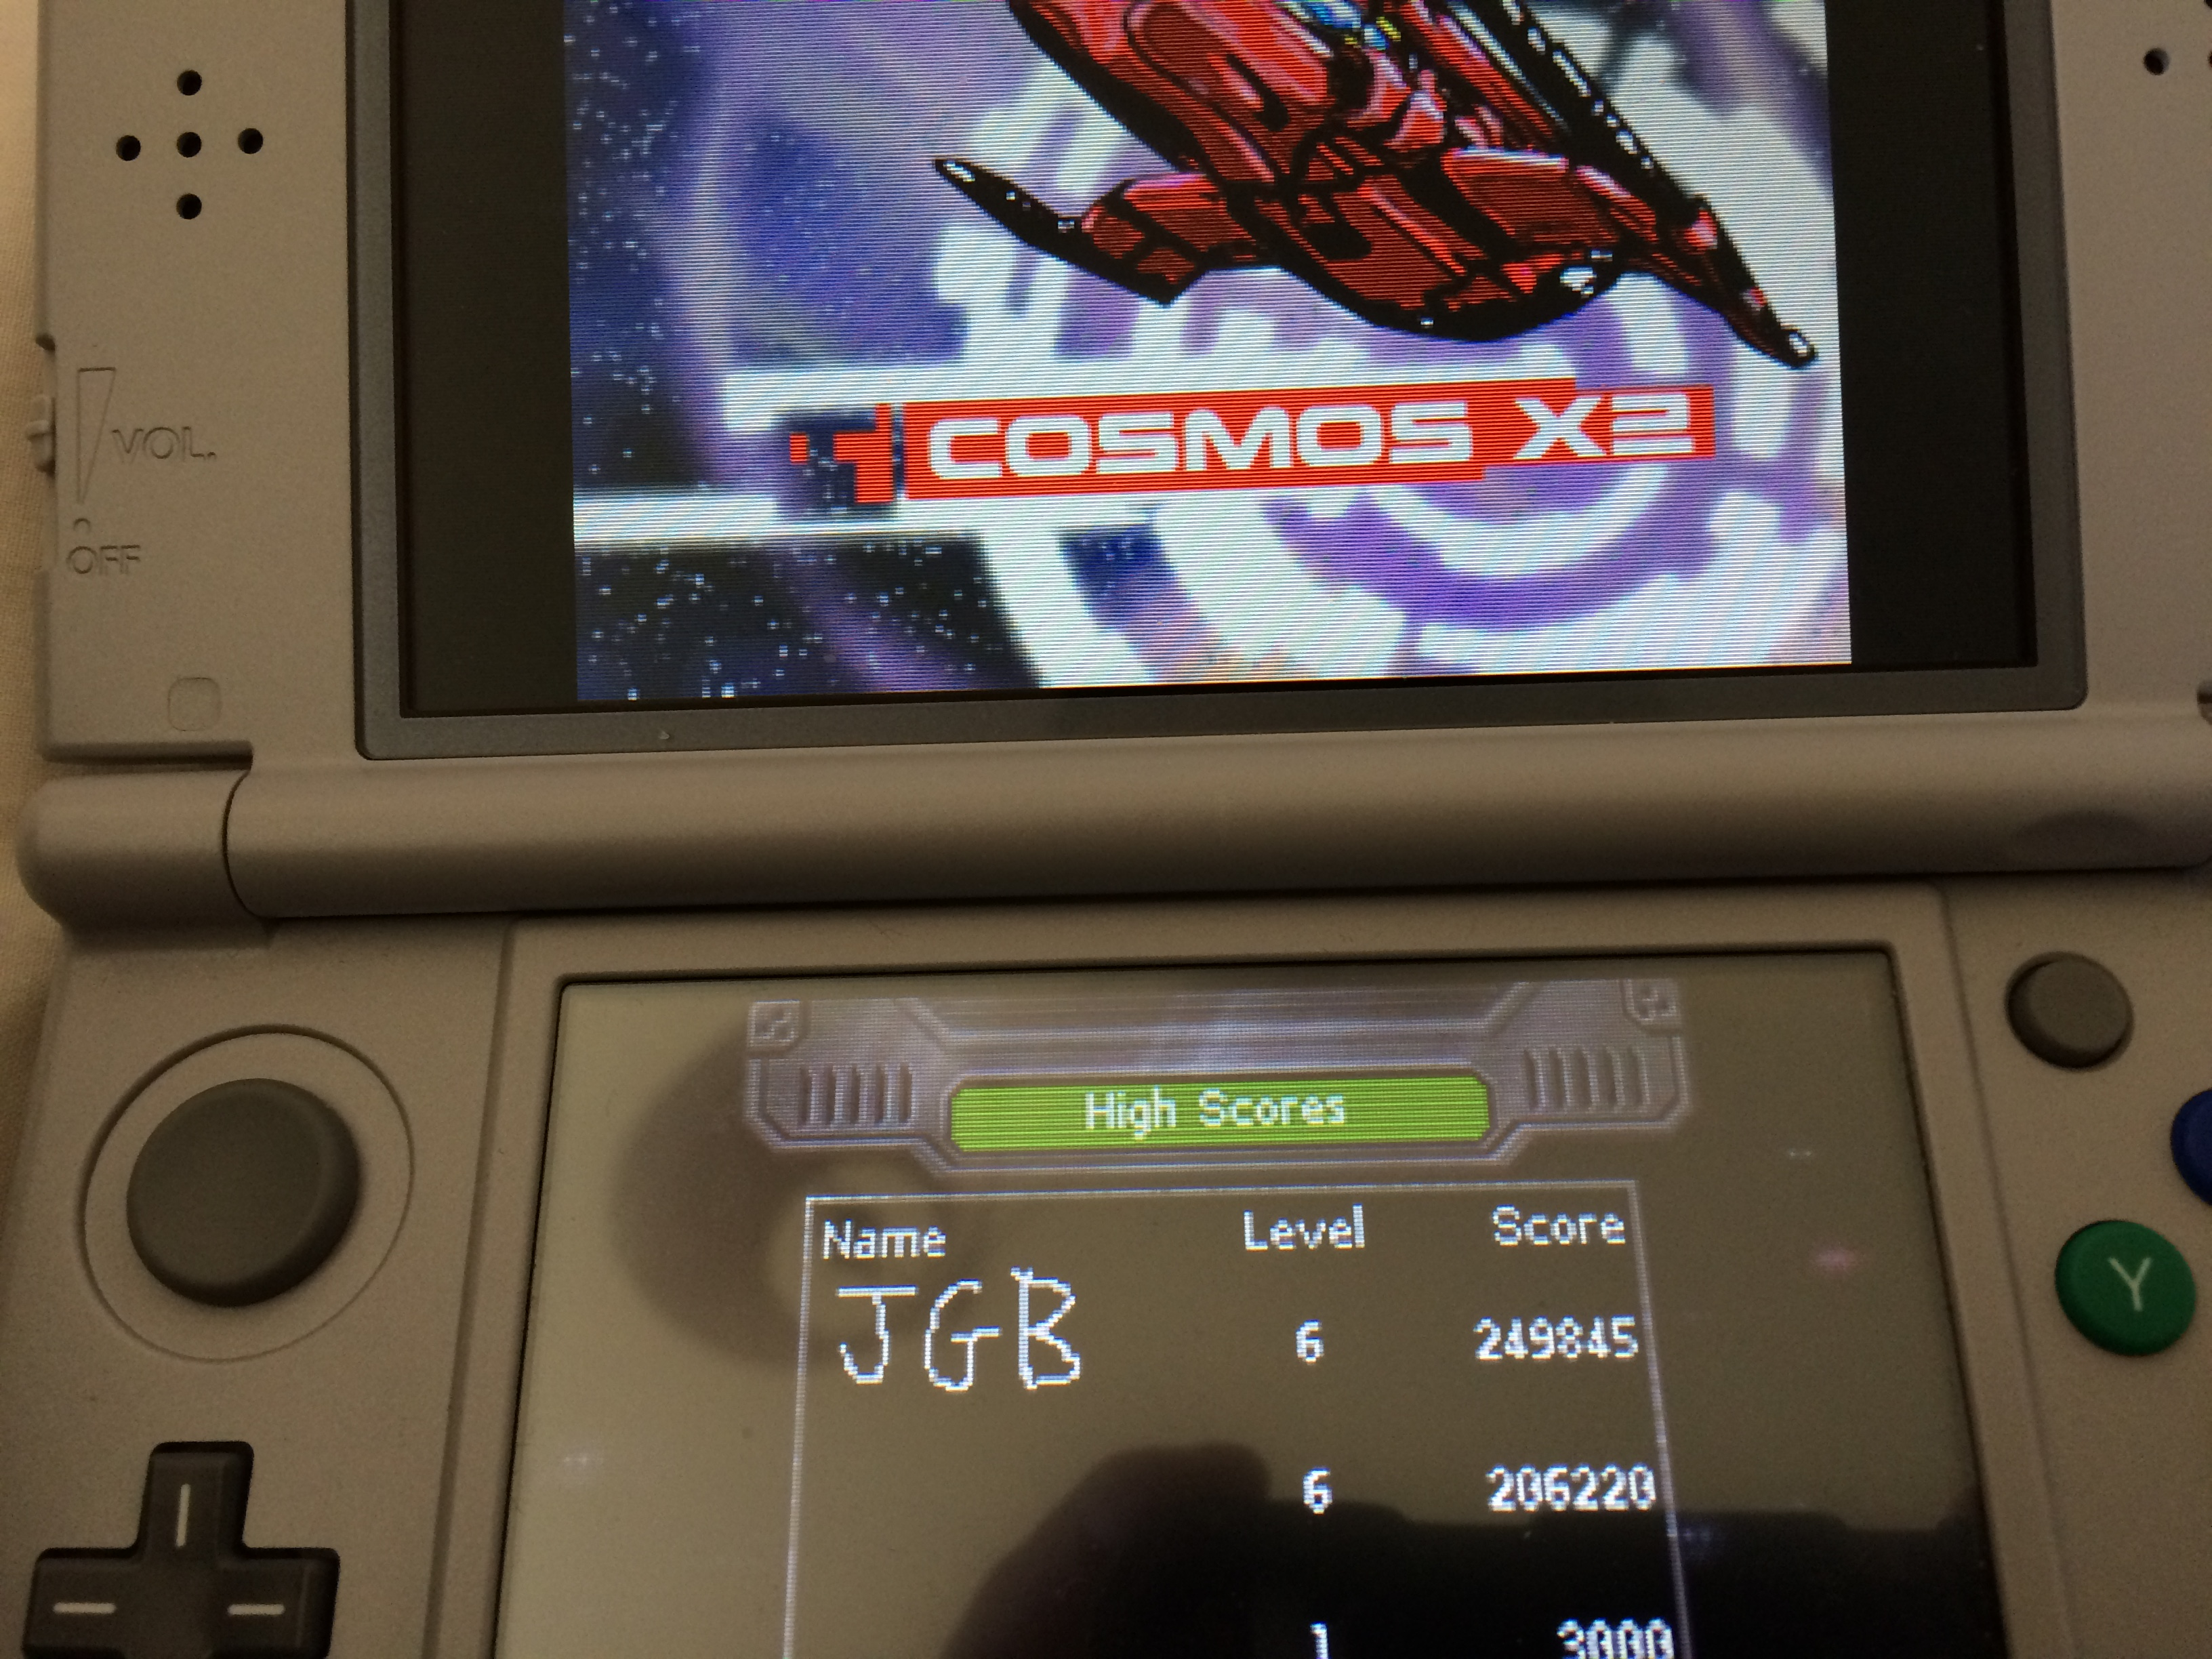 JBoorman: Cosmos X2 [Normal] (Nintendo DS) 249,845 points on 2018-02-17 05:40:05